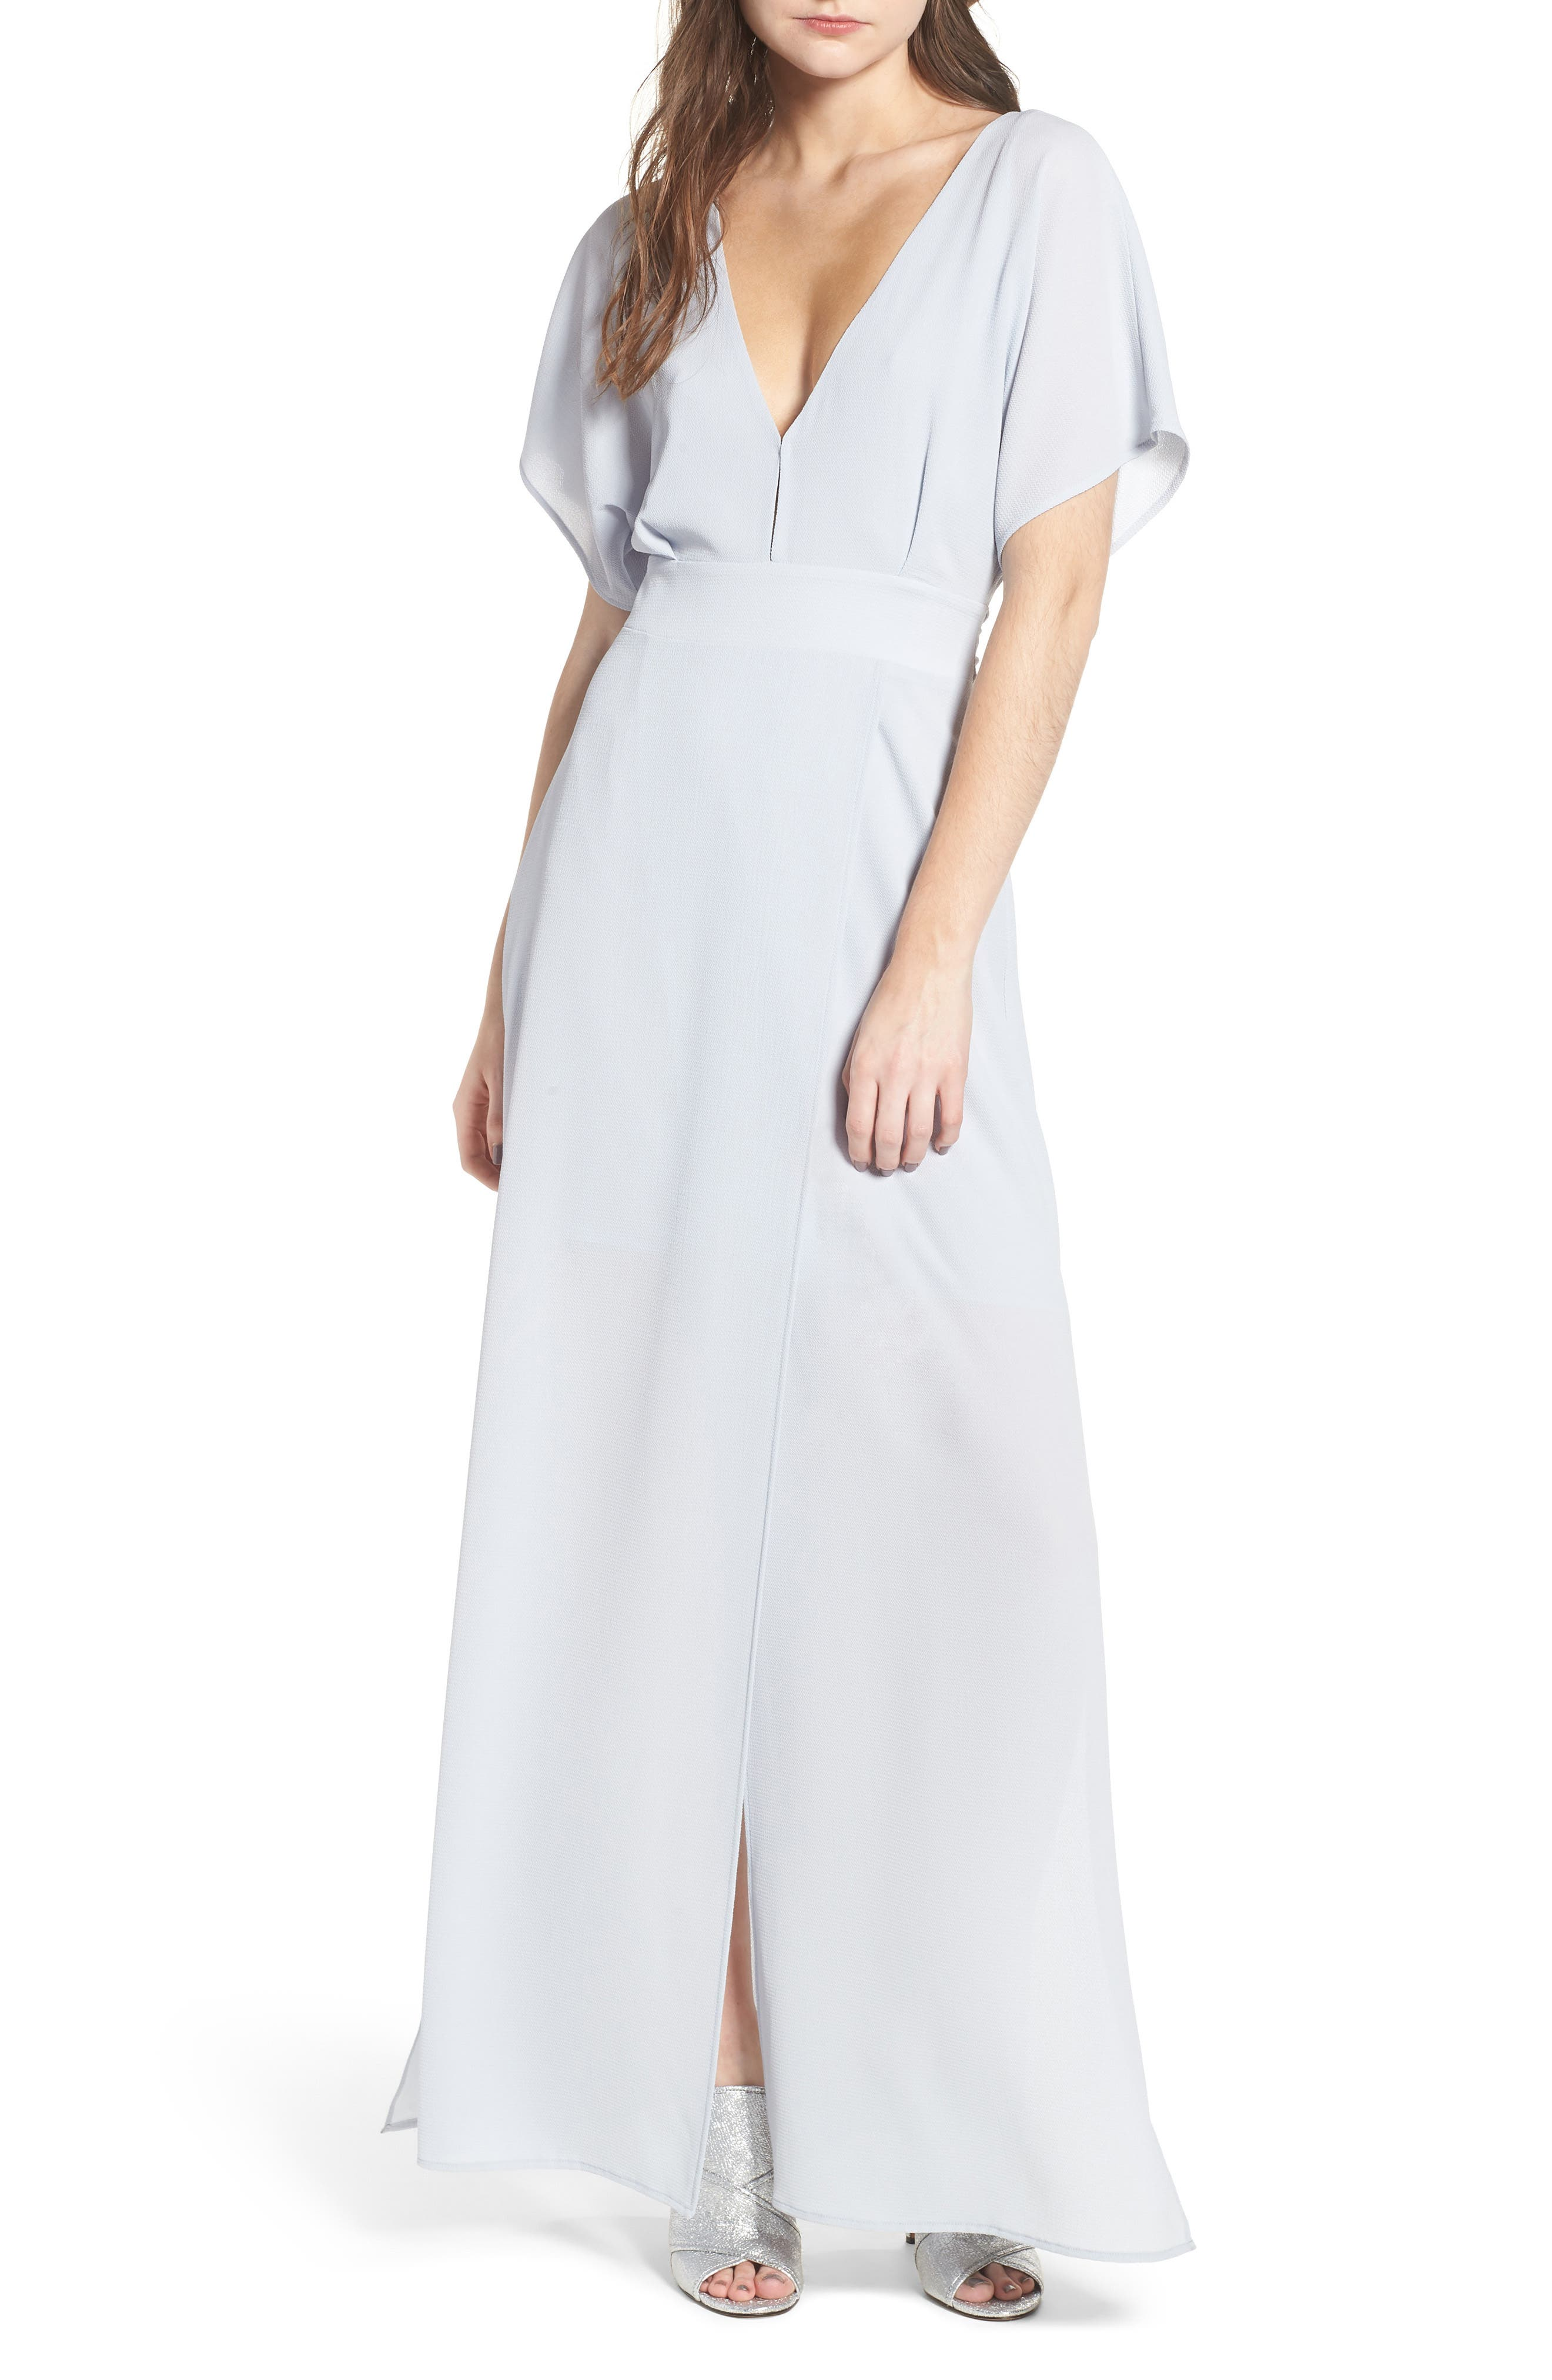 Carrara Slit Maxi Dress,                         Main,                         color, Blue Ice